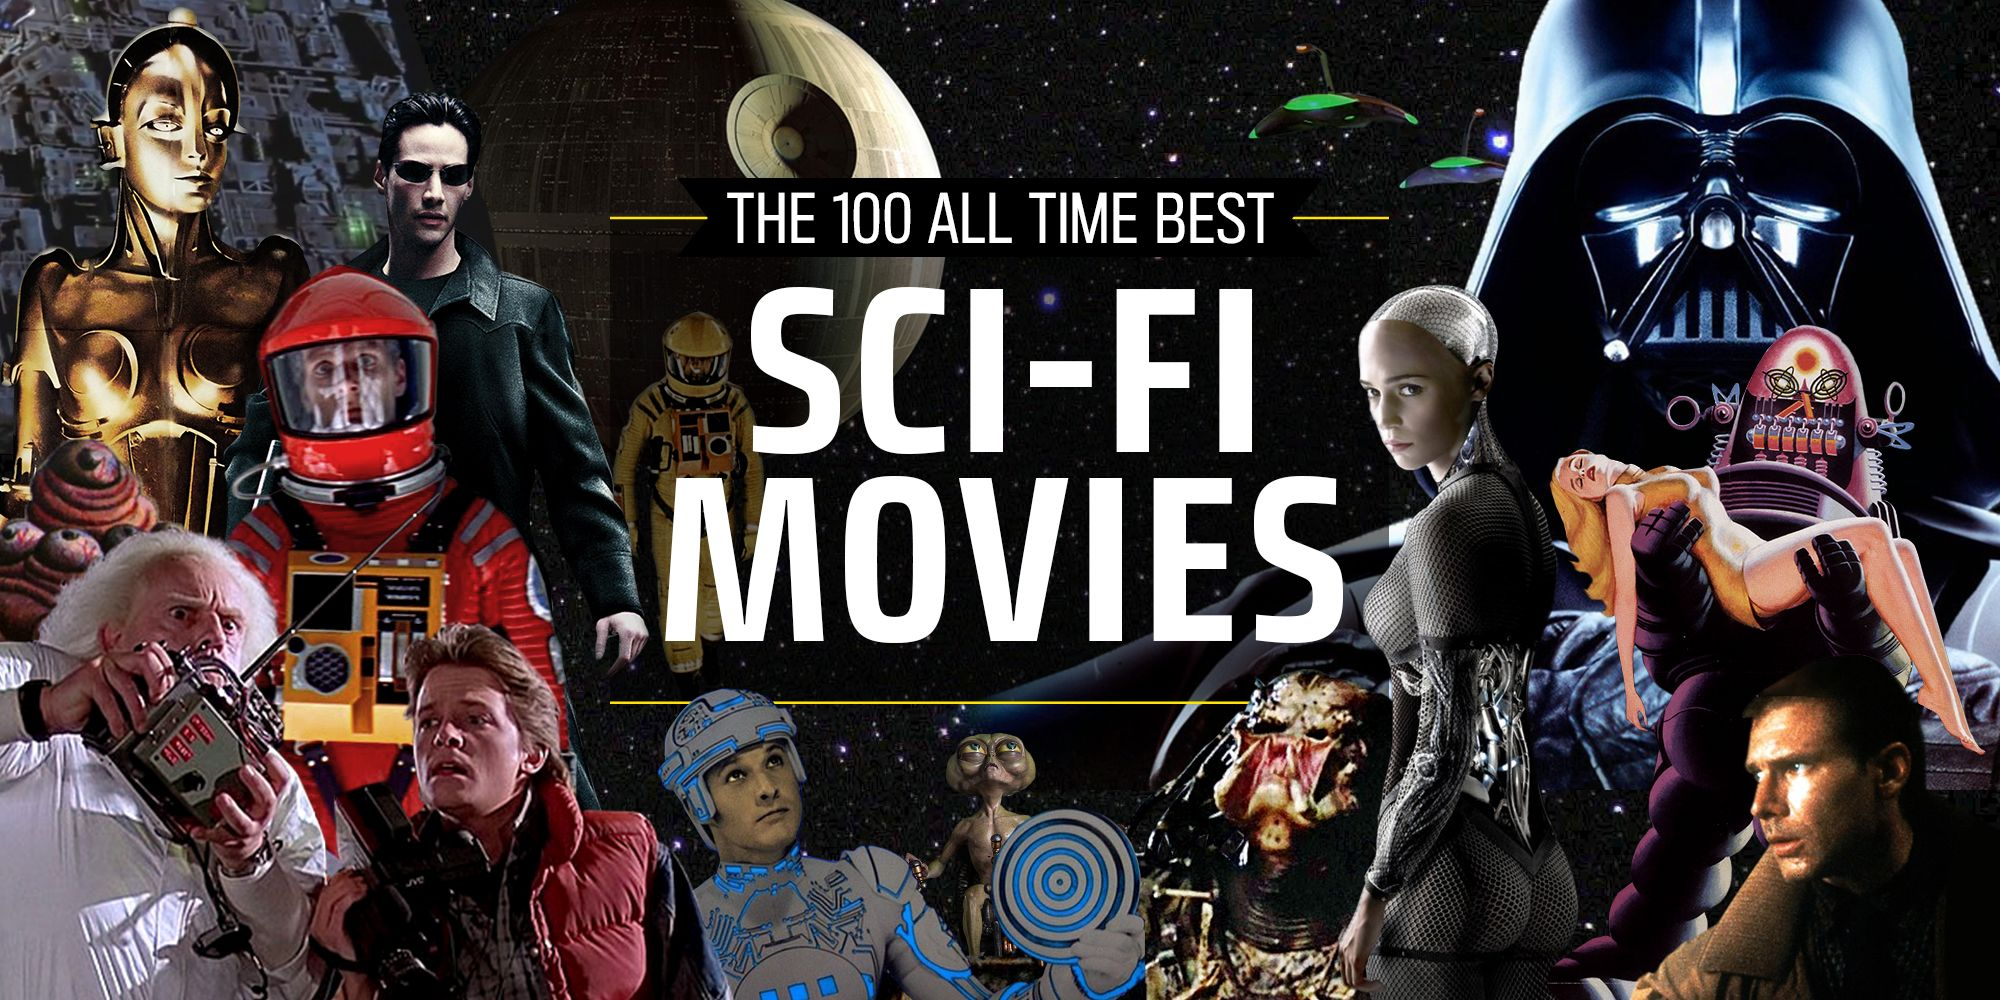 Image result for scifimovies best sci fi movie sci fi